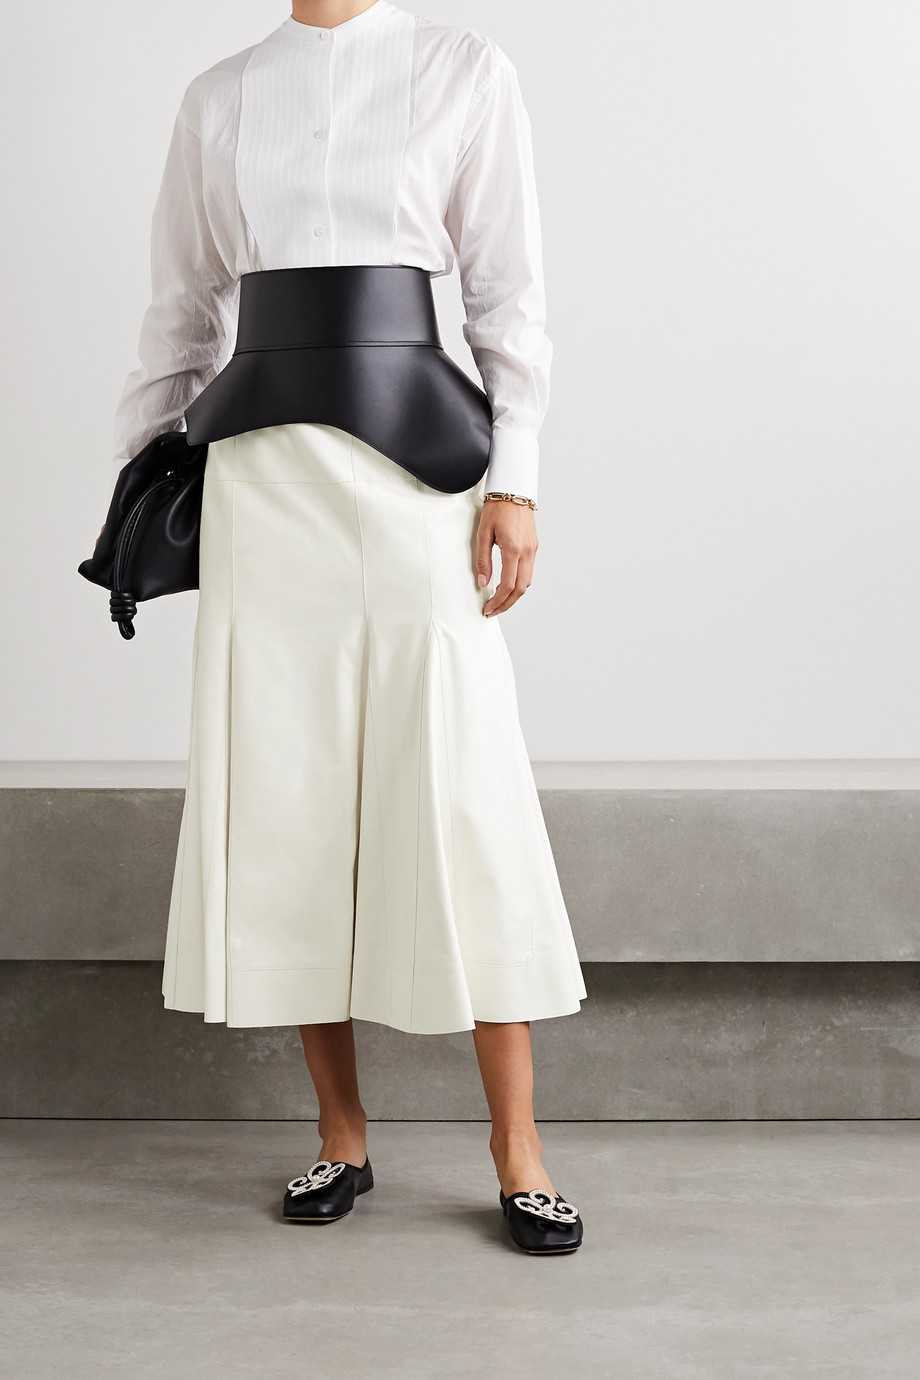 Loewe Pleated leather midi skirt